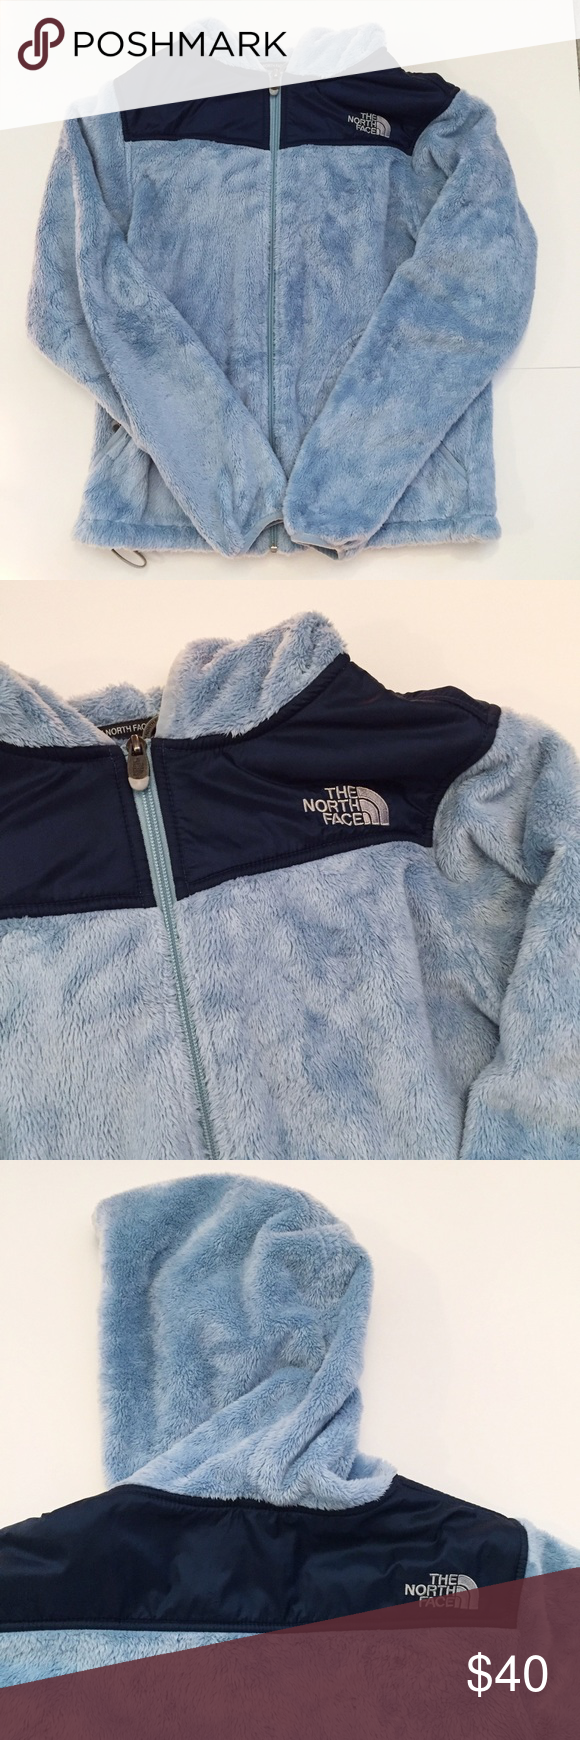 north face hoodie Gently used - has one flaw on the sleeve (shown in the last picture) but it's not noticeable. Super soft and comfy and will definitely keep you warm! North Face Jackets & Coats